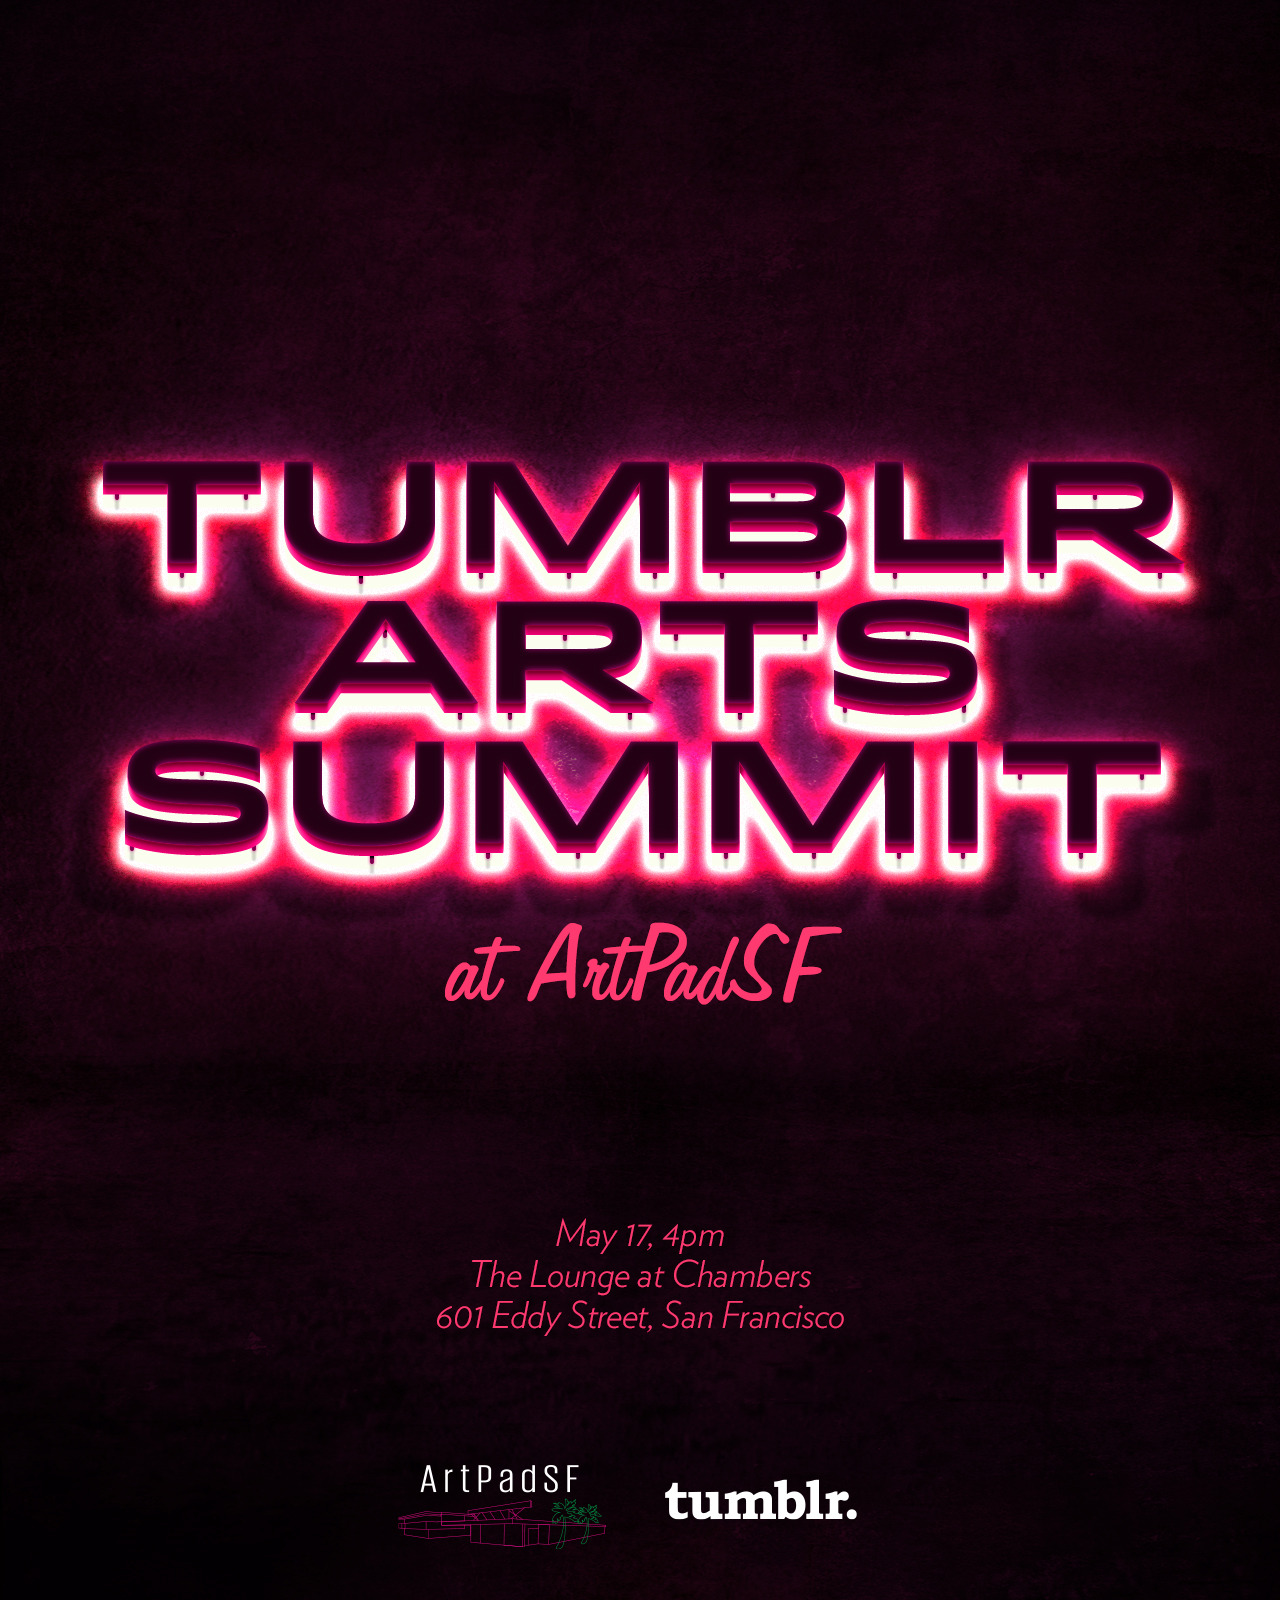 tumblropenarts:  The Tumblr Arts Summit at ArtPadSF will explore the way we share, create, and engage with art on the web. Seven leading art world professionals will discuss how their institutions, brands and associations have benefited from social media and the web, where and how they've found the most success, and the challenges presented with technologically engaging the art world. With: Ken Harman, curator and owner of Spoke Art Gallery James Salzmann, West Coast Managing Director of Paddle8 Jennifer Yin, Manager of Marketing & Digital Engagement at Asian Art Museum Joel Kuennen, Director of Operations, Senior Editor at ArtSlant Kara Q. Smith, Managing Editor of Art Practical and Community Engagement Coordinator at SFMOMA Liz Glass, Assistant Curator at Wattis Institute for Contemporary Art  Eric Dyer, Artist ArtPadSF has established a solid reputation by providing an opportunity for gallerists, collectors, curators, artists, critics and art lovers to experience the best of the emerging contemporary art market in an intimate and unique setting. There will be tons of art to enjoy and great discussion. If you're in San Francisco, please come out!